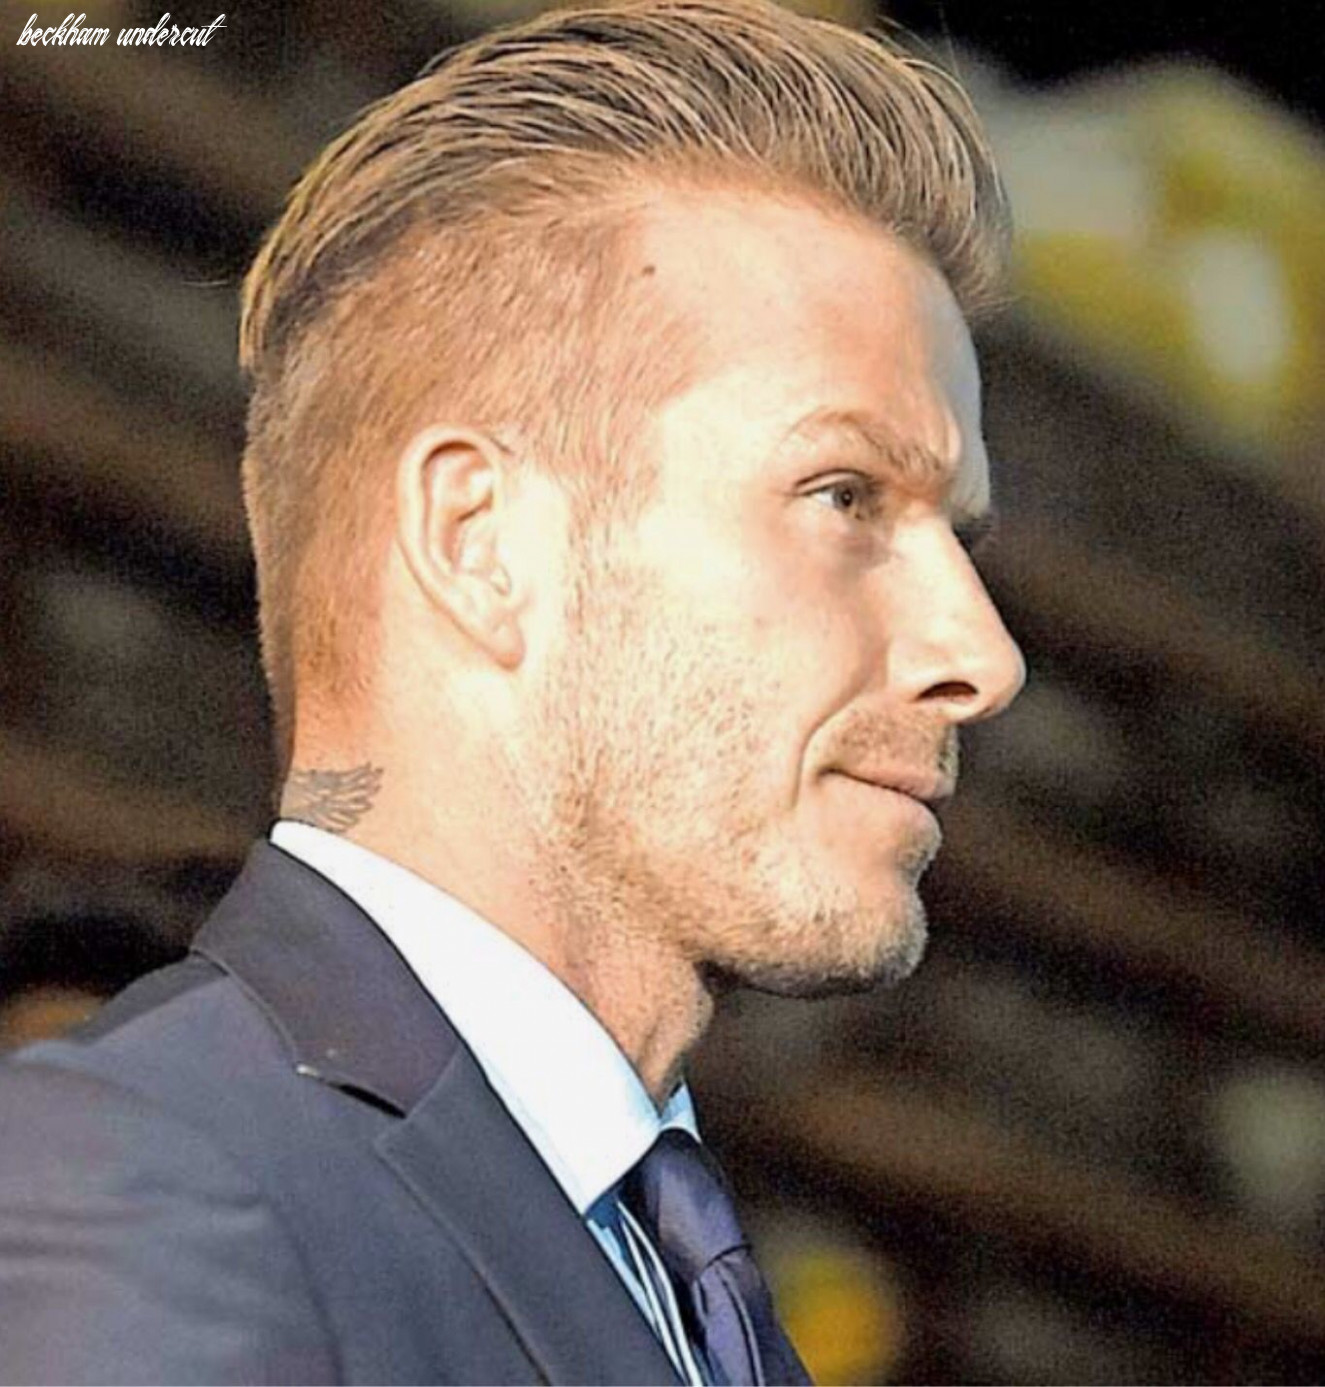 Undercut comb over side and back view | beckham, jungen